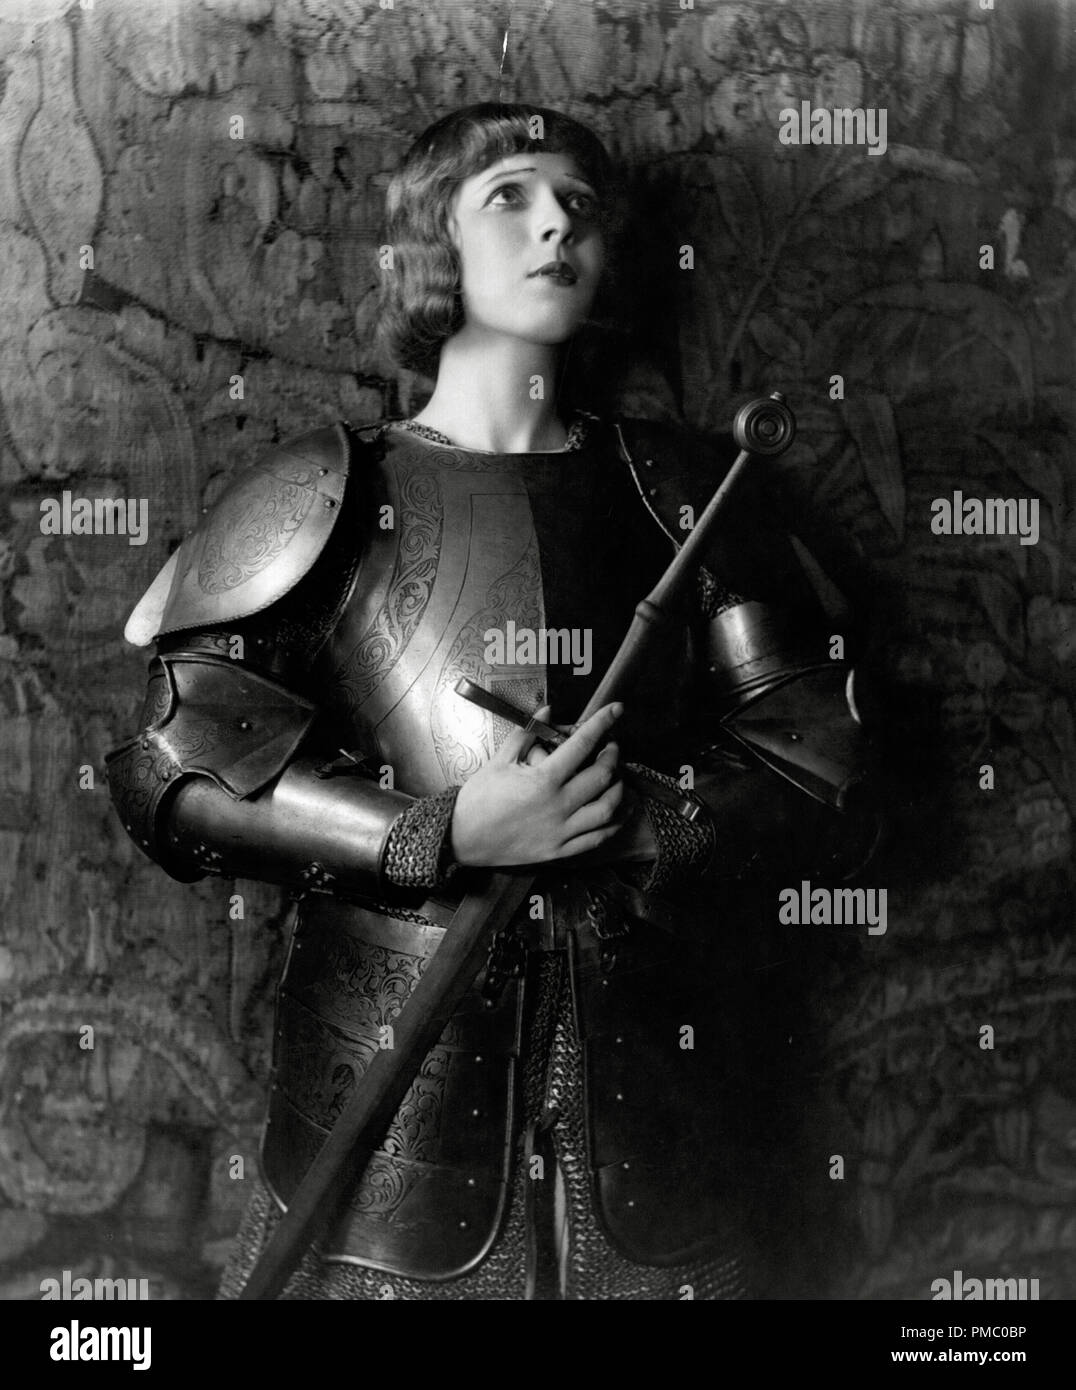 Ina Claire In Character As Joan Of Arc For The Open Air Production Filmed Of The National Red Cross Pageant 1917 An All Star Revue Silent Film Now Considered A Lost Film Directed By